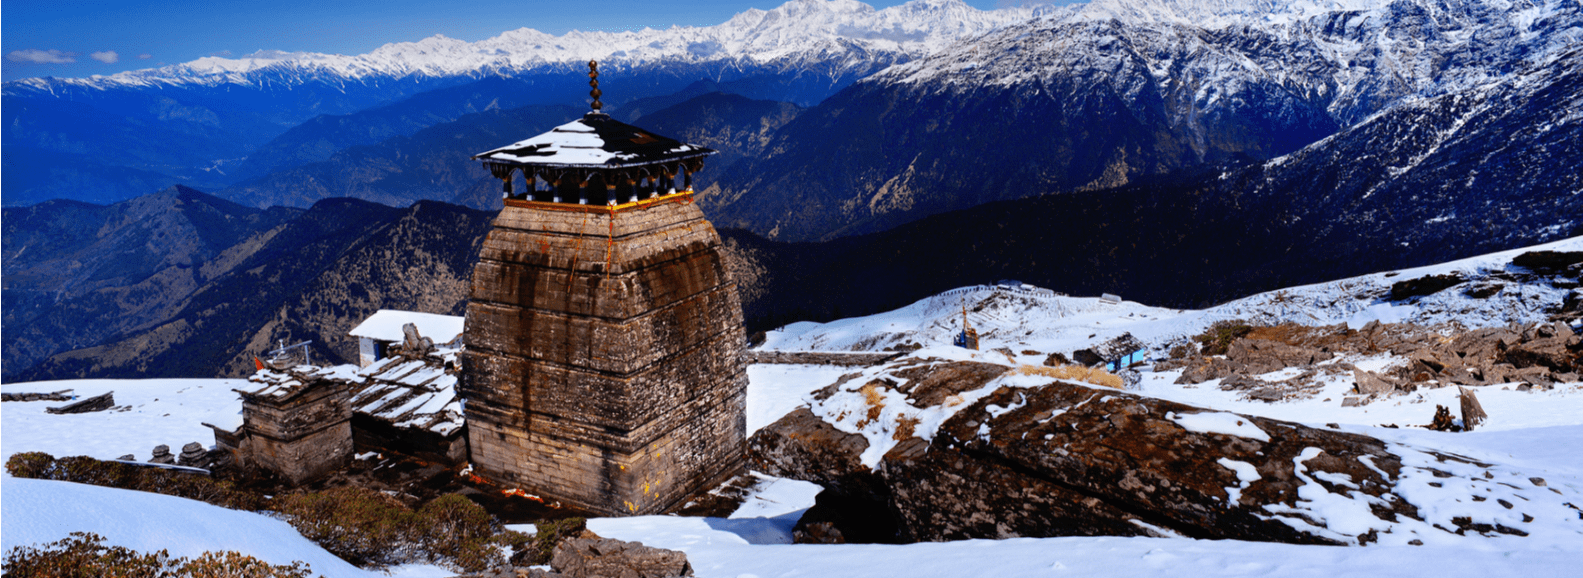 Tungnath temple in Uttarakhand is the highest Lord Shiva temple and is a part of Panch Kedar yatra